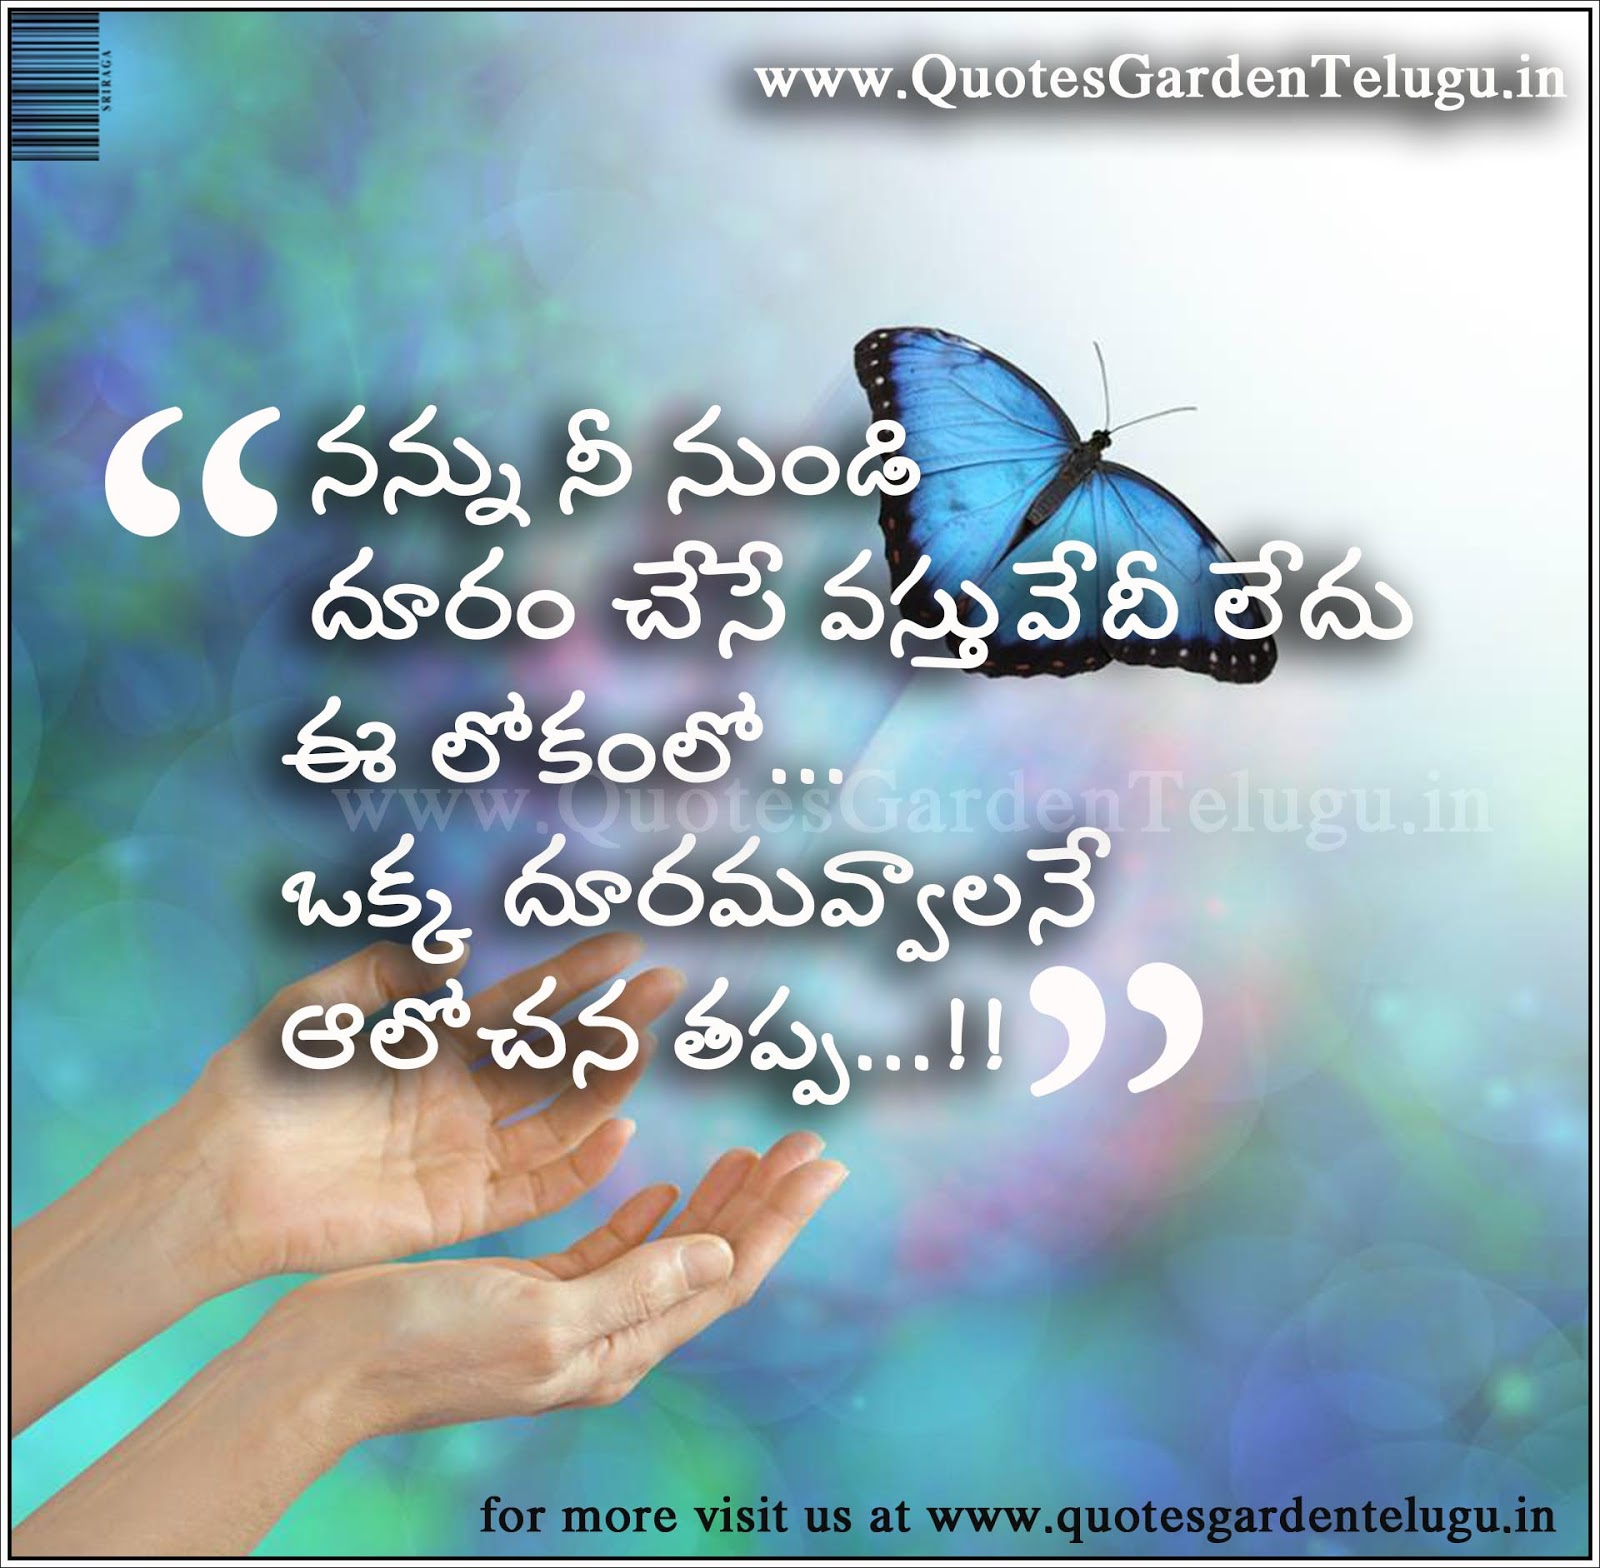 Best Lagics Of Love In Telugu: Breakup Love Telugu Quotes Touching Messages For Lovers